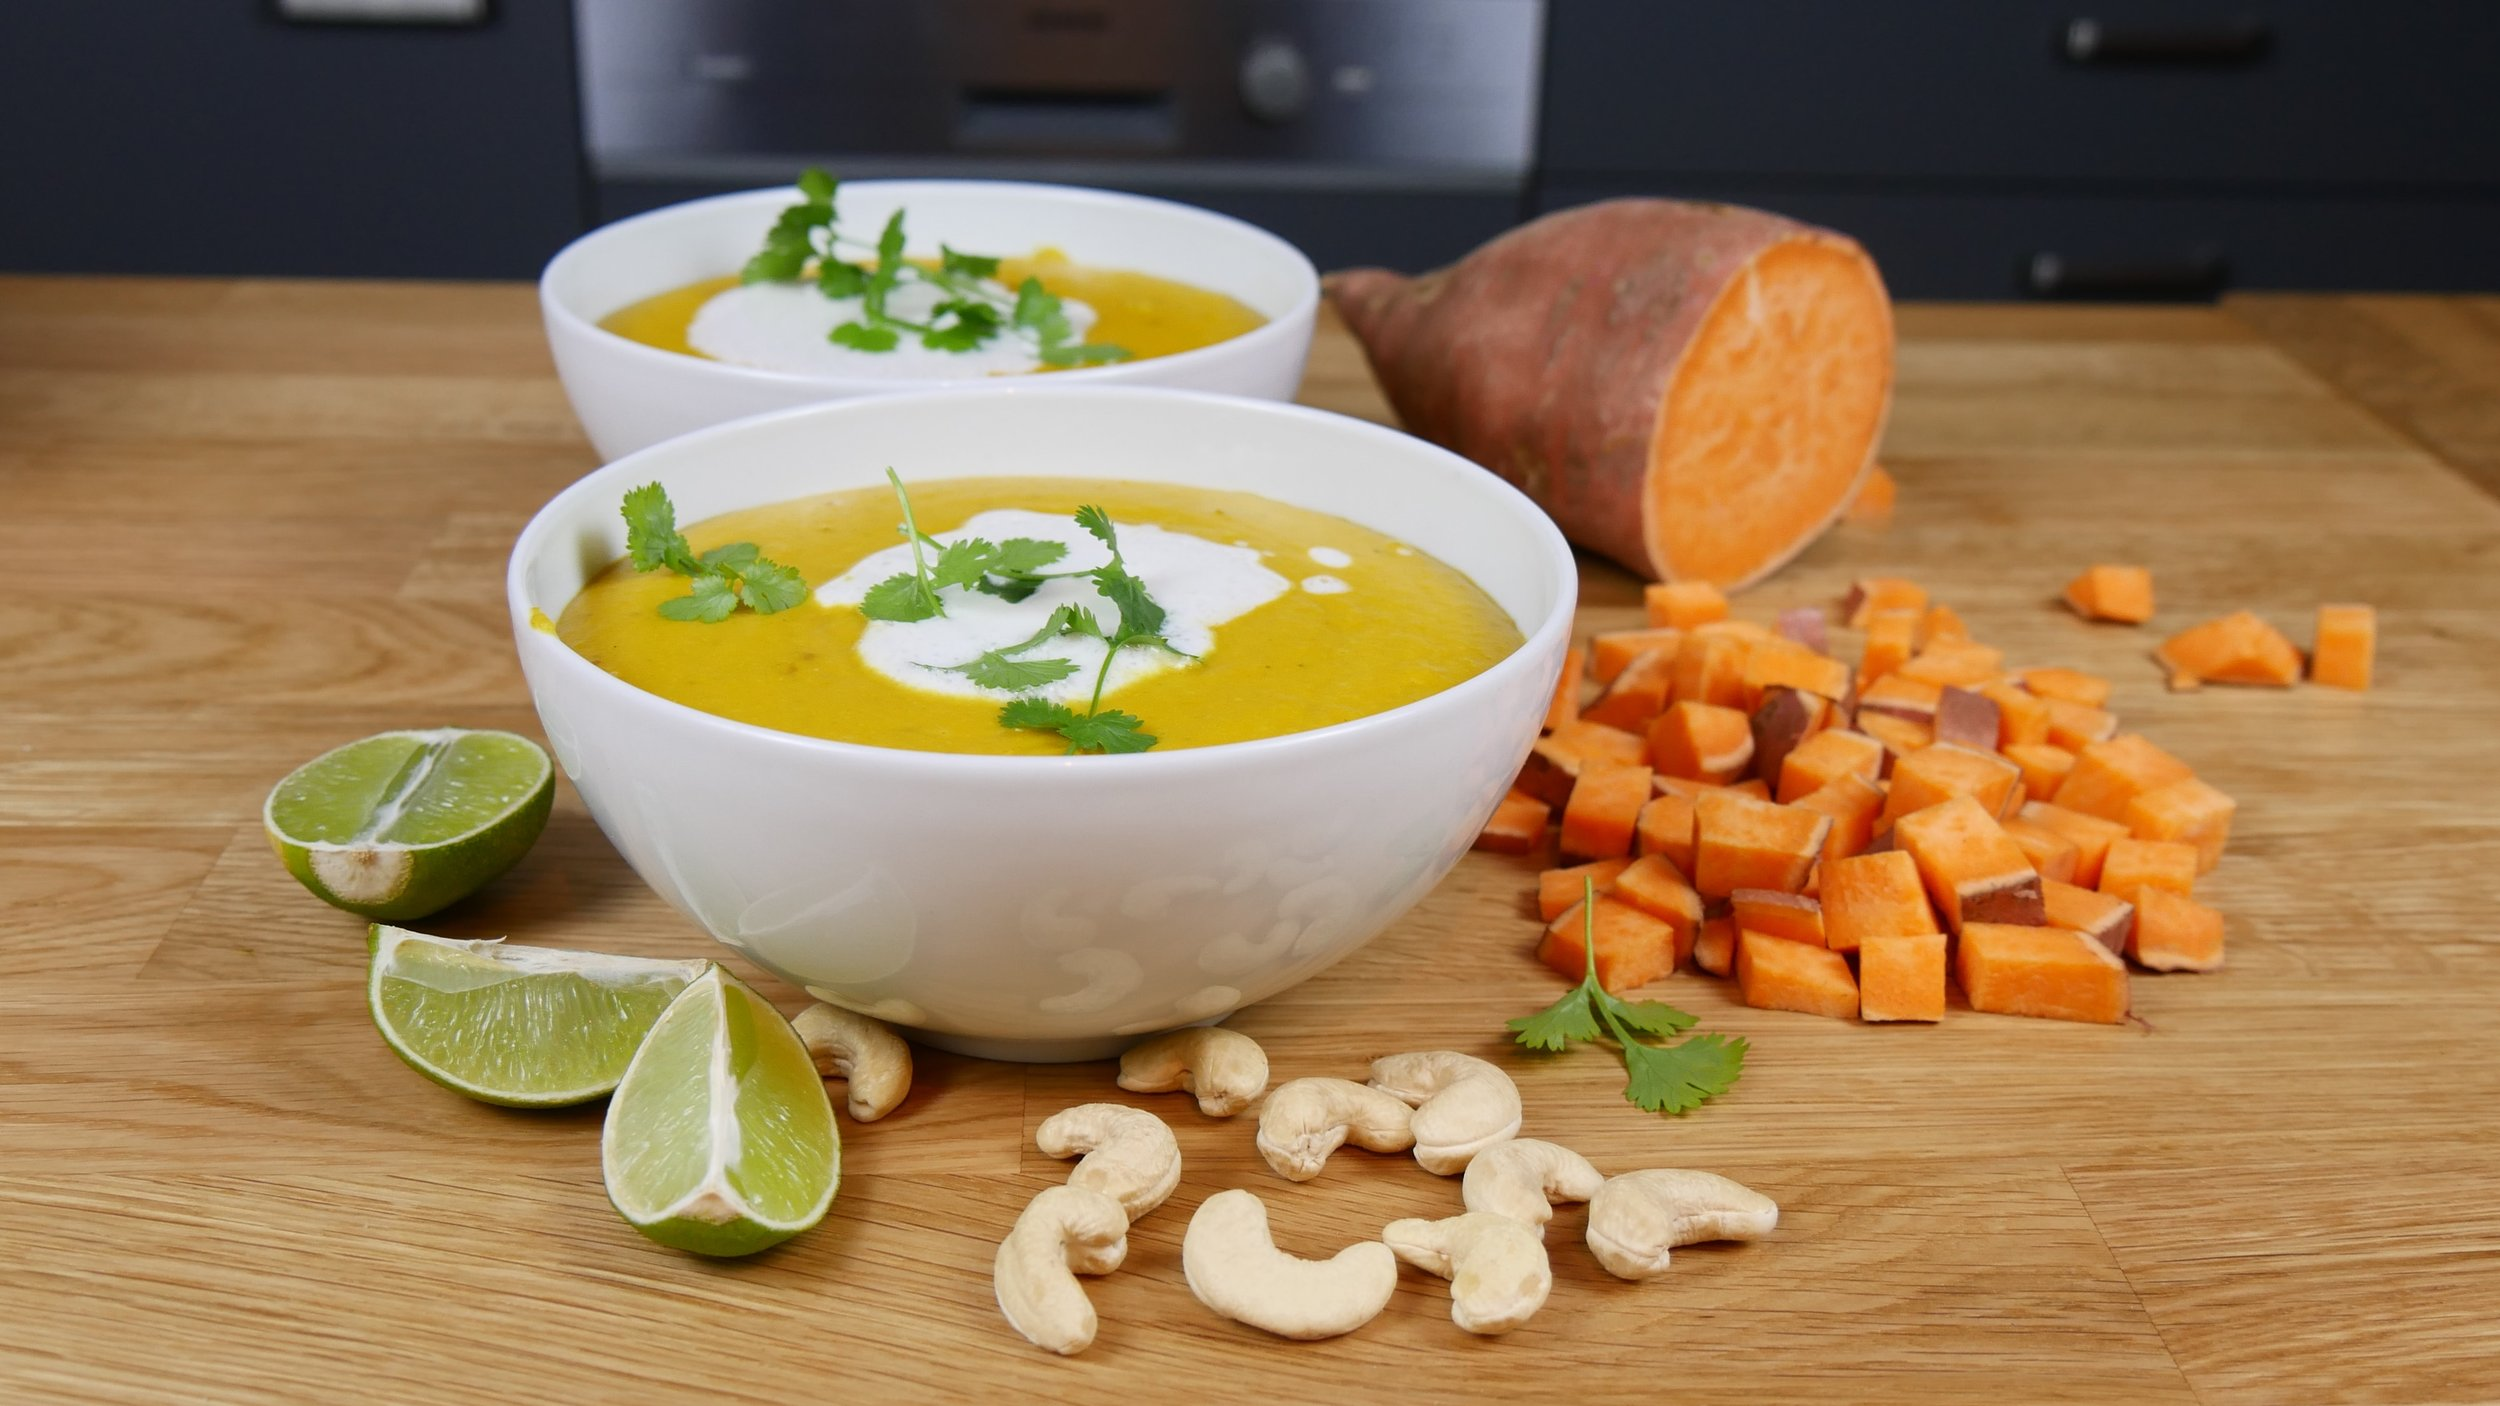 photos are for promotional use only. actual soup may look different as they are made from scratch daily.